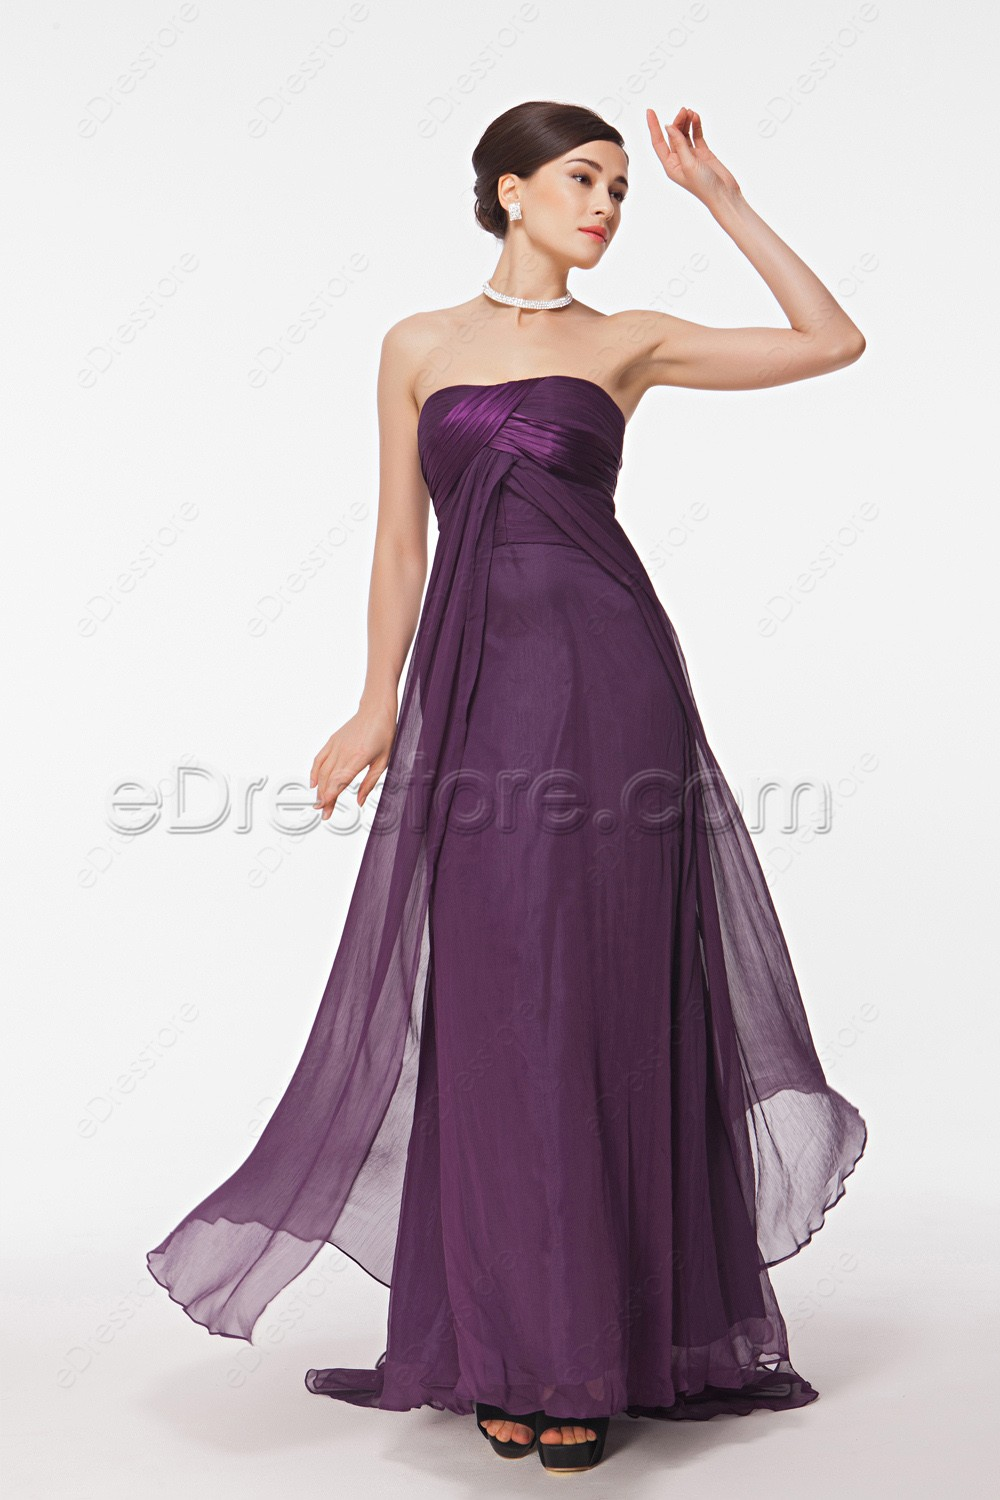 Purple maid of honor dresses long bridesmaid dresses for Maid of honor wedding dresses